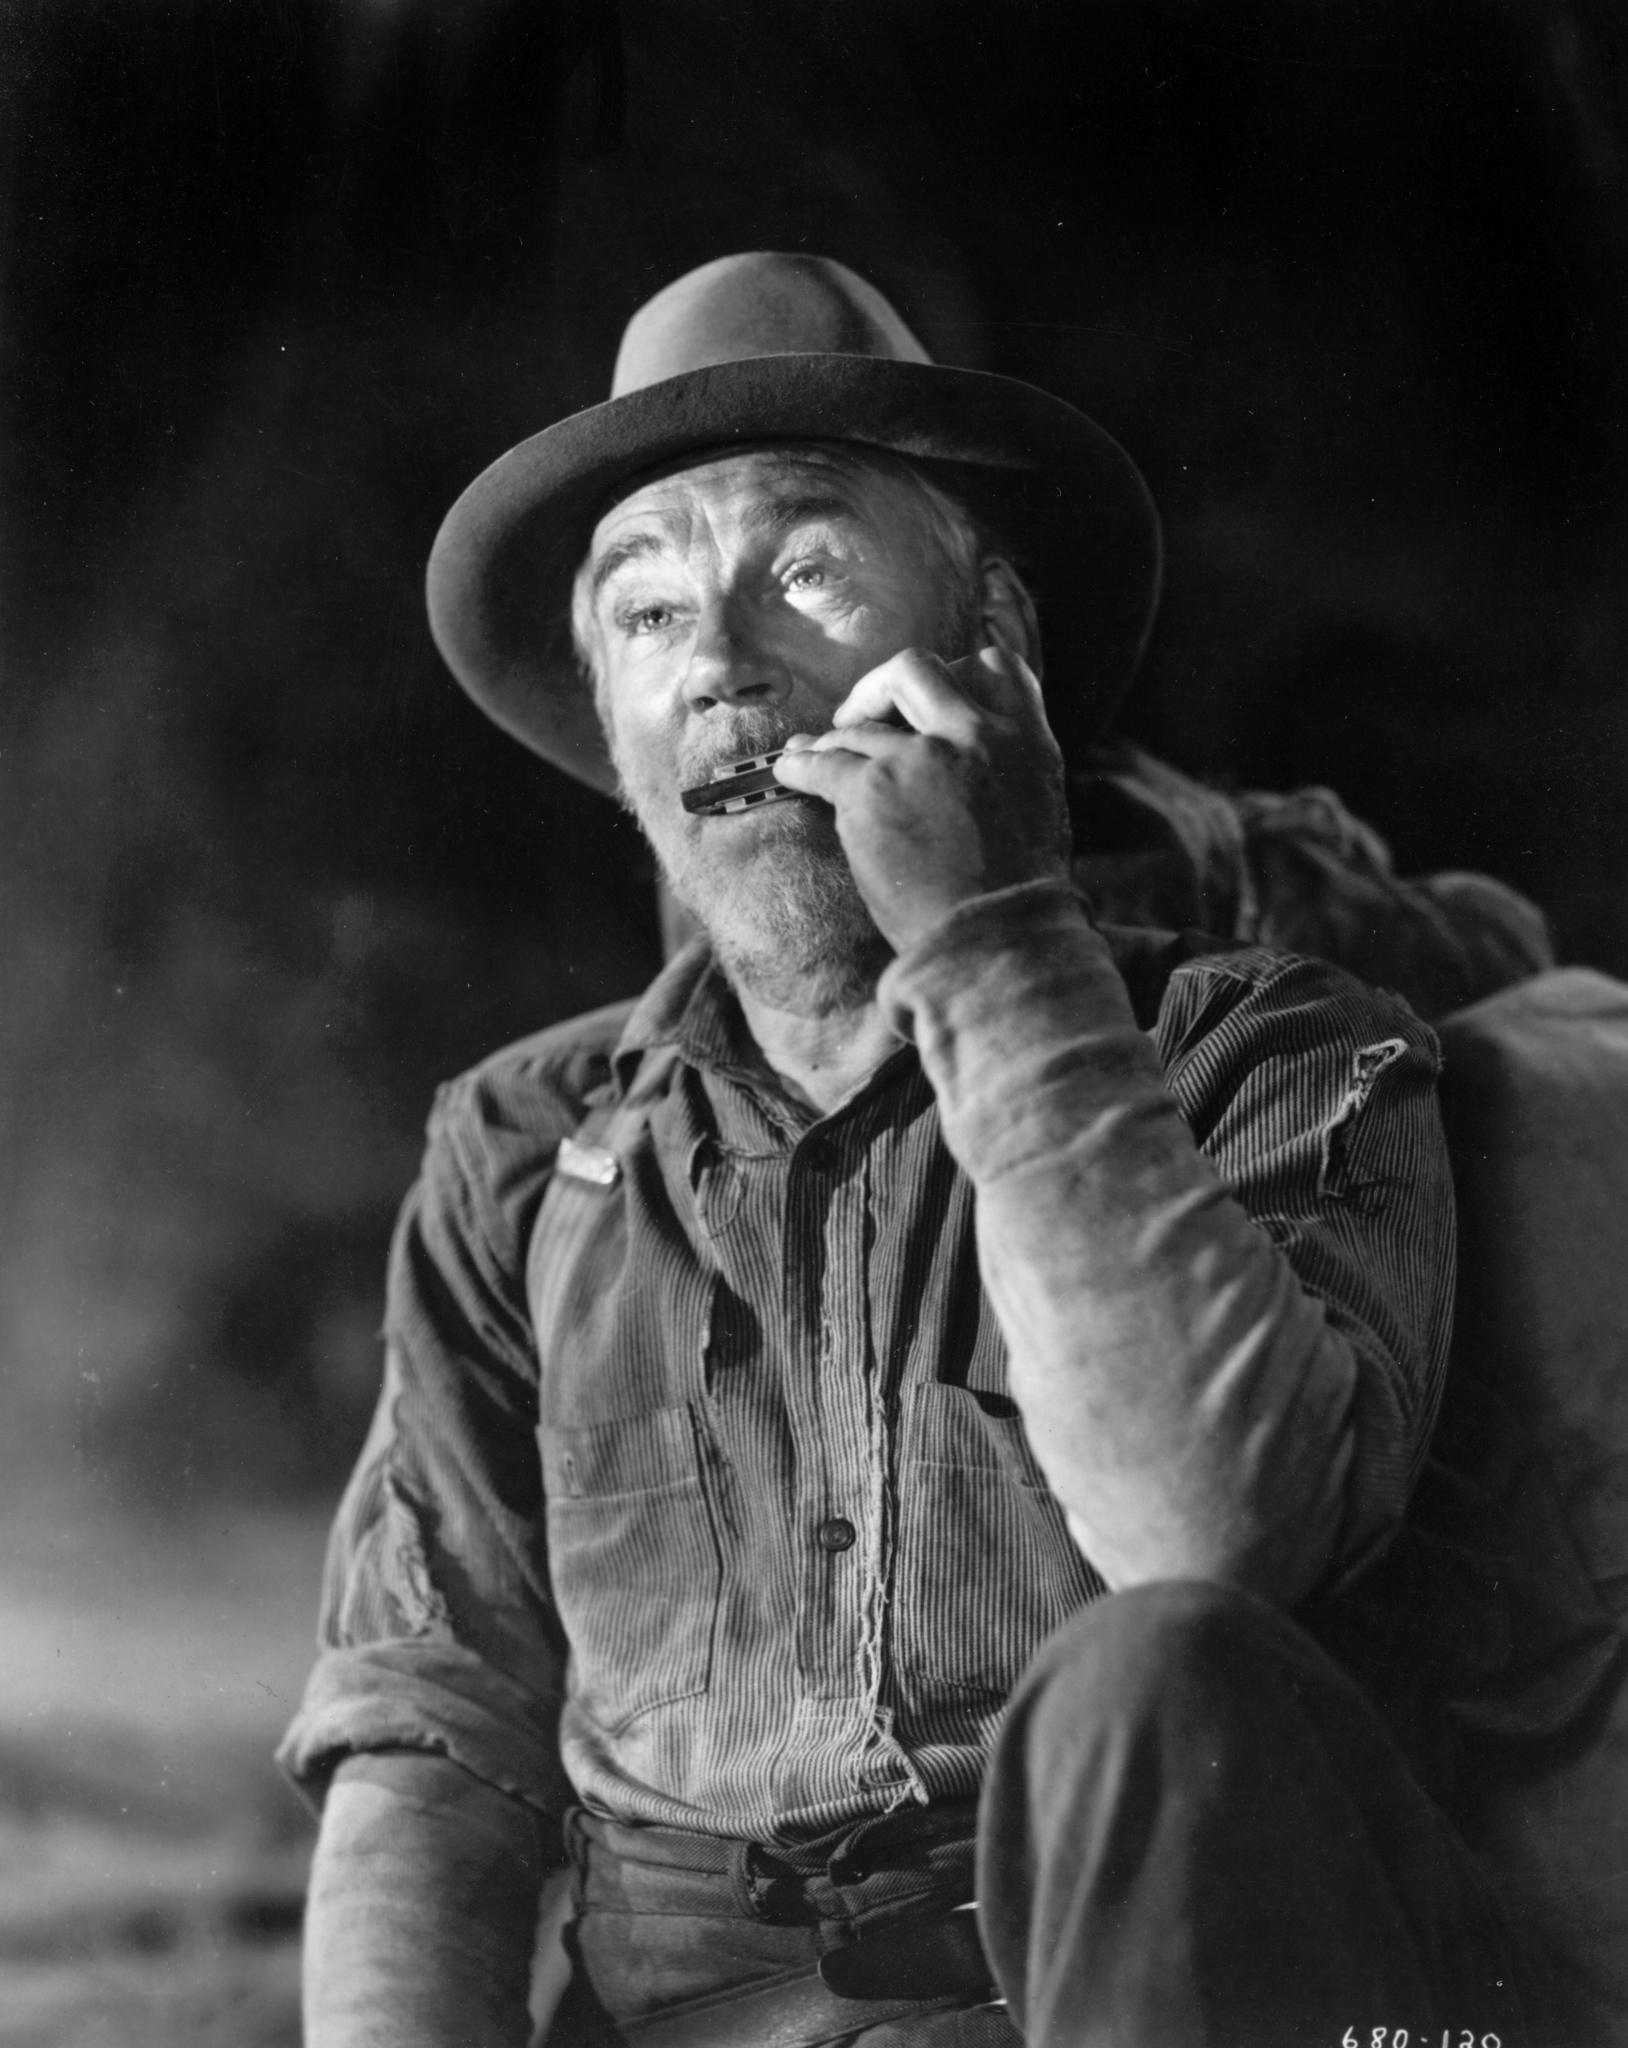 Howard (The Treasure of the Sierra Madre)